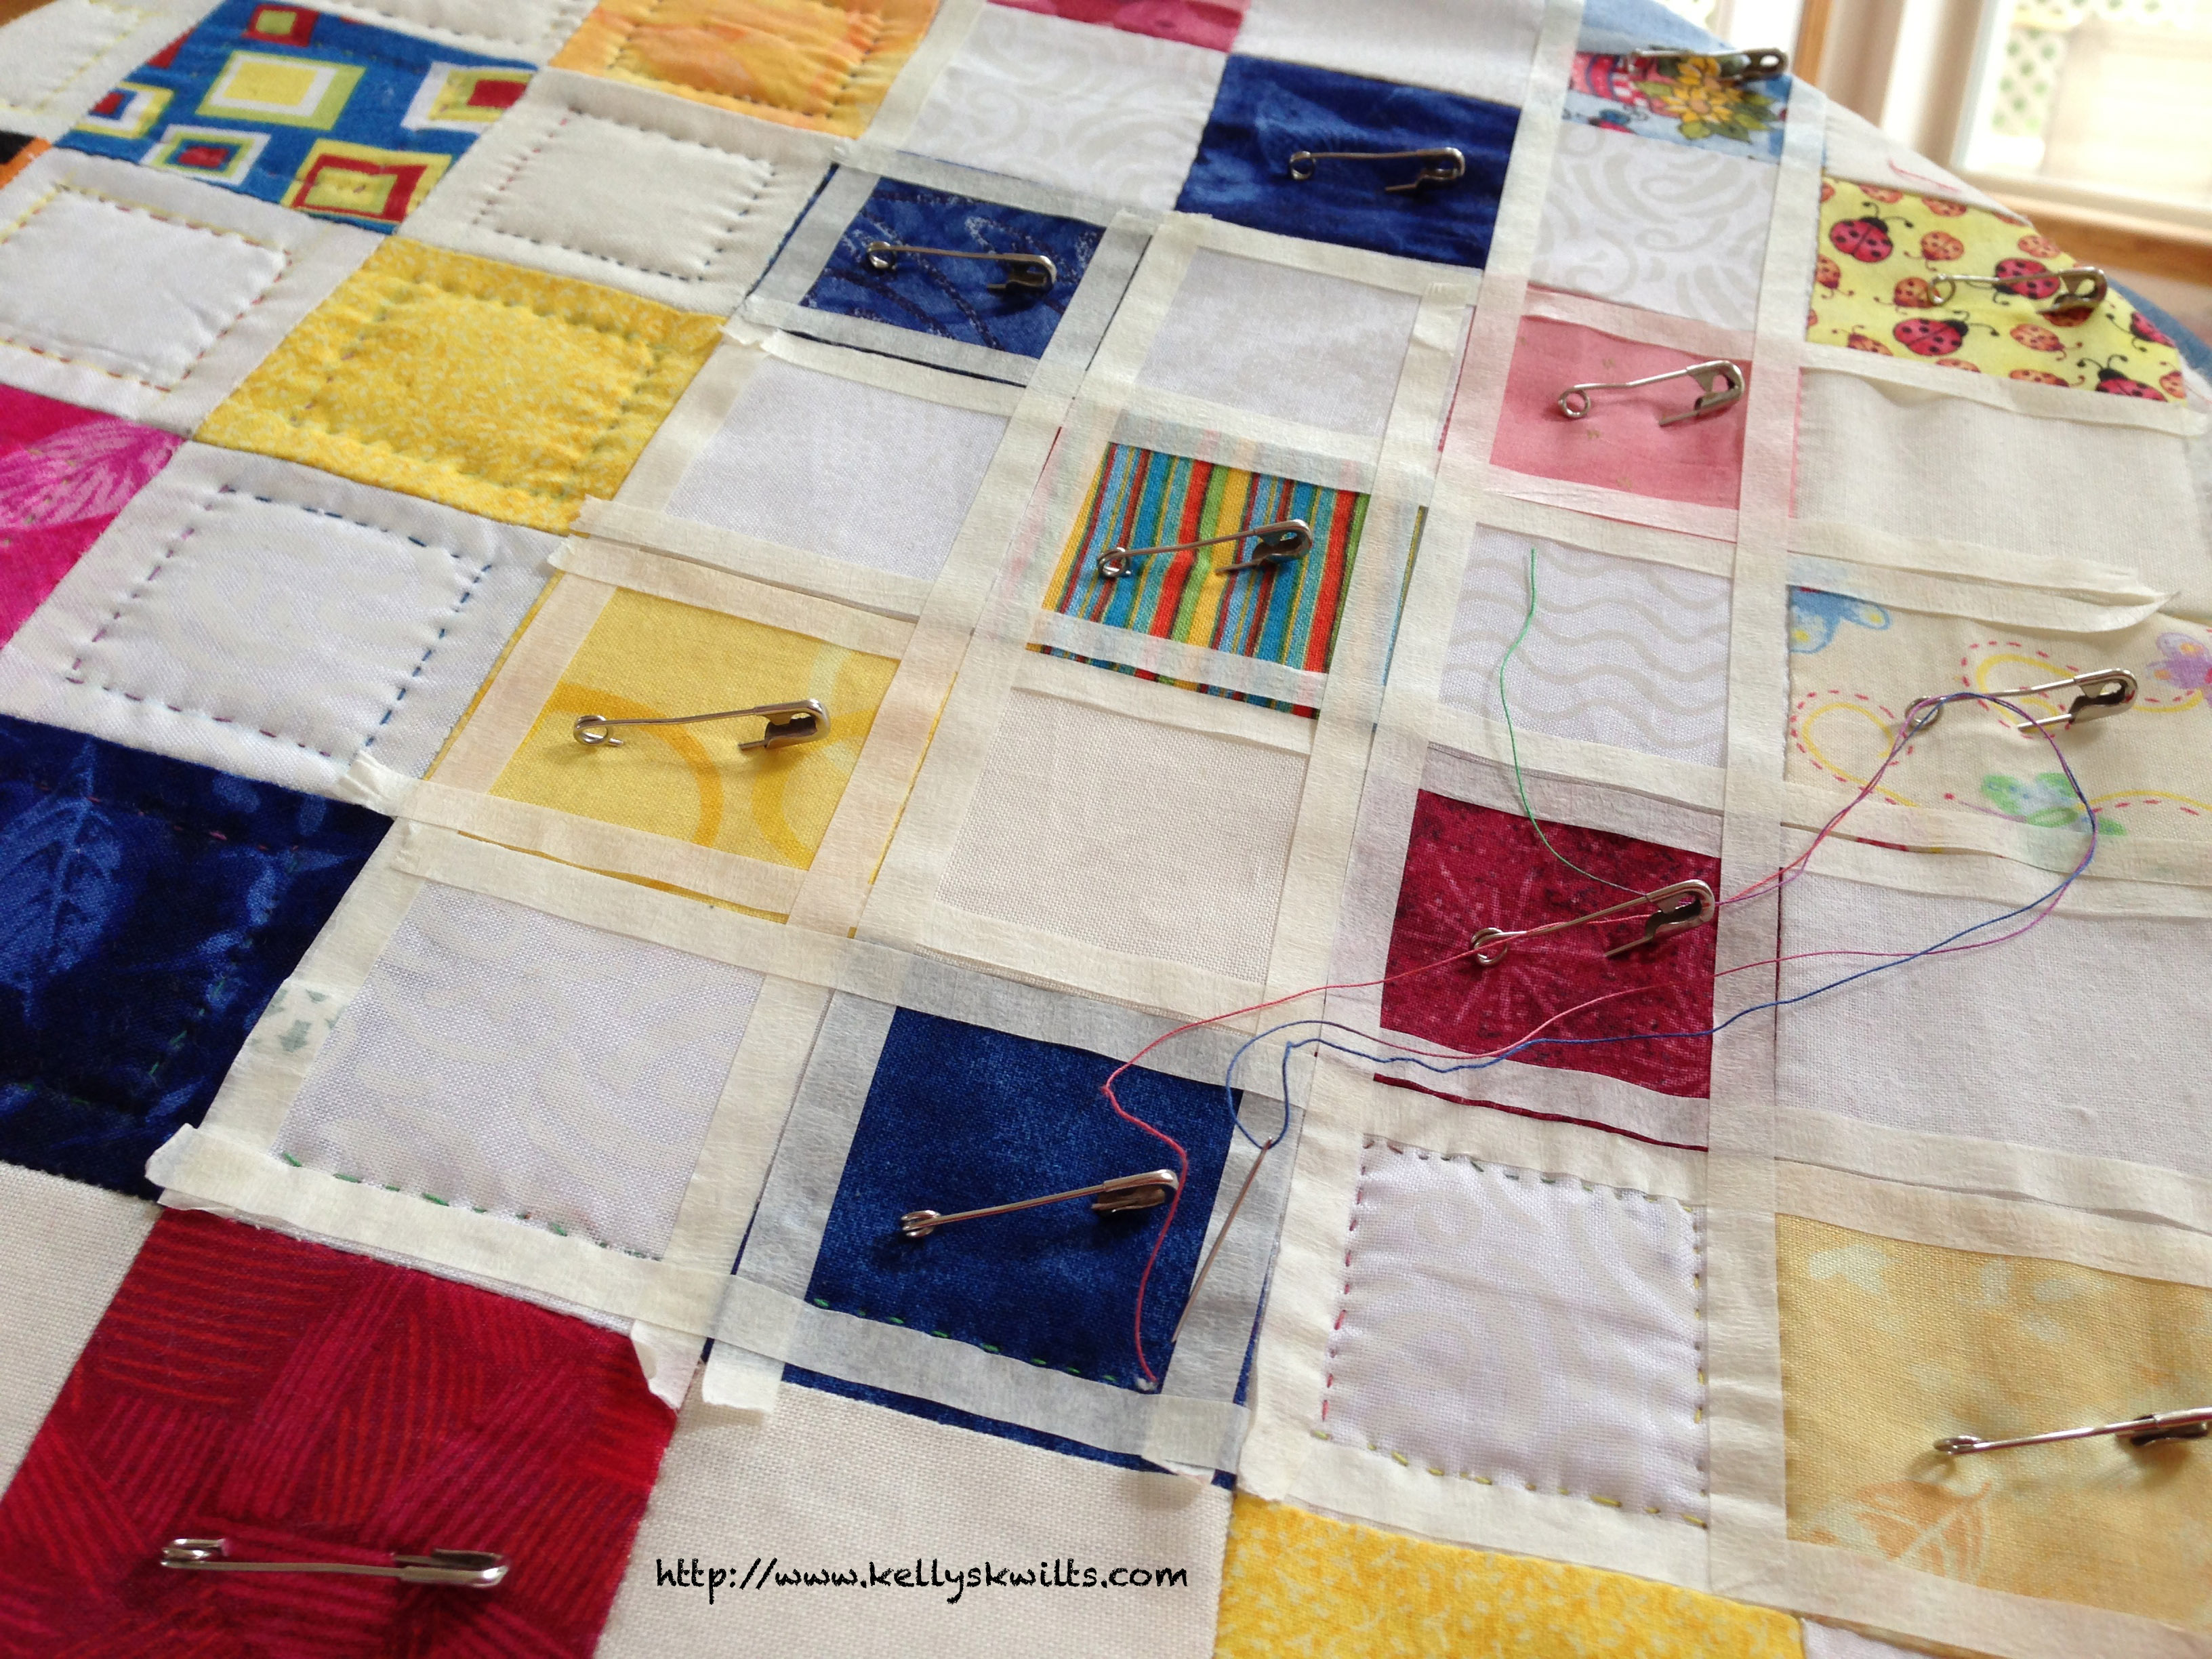 Hand Quilting and More Shopping – Kelly's Kwilts